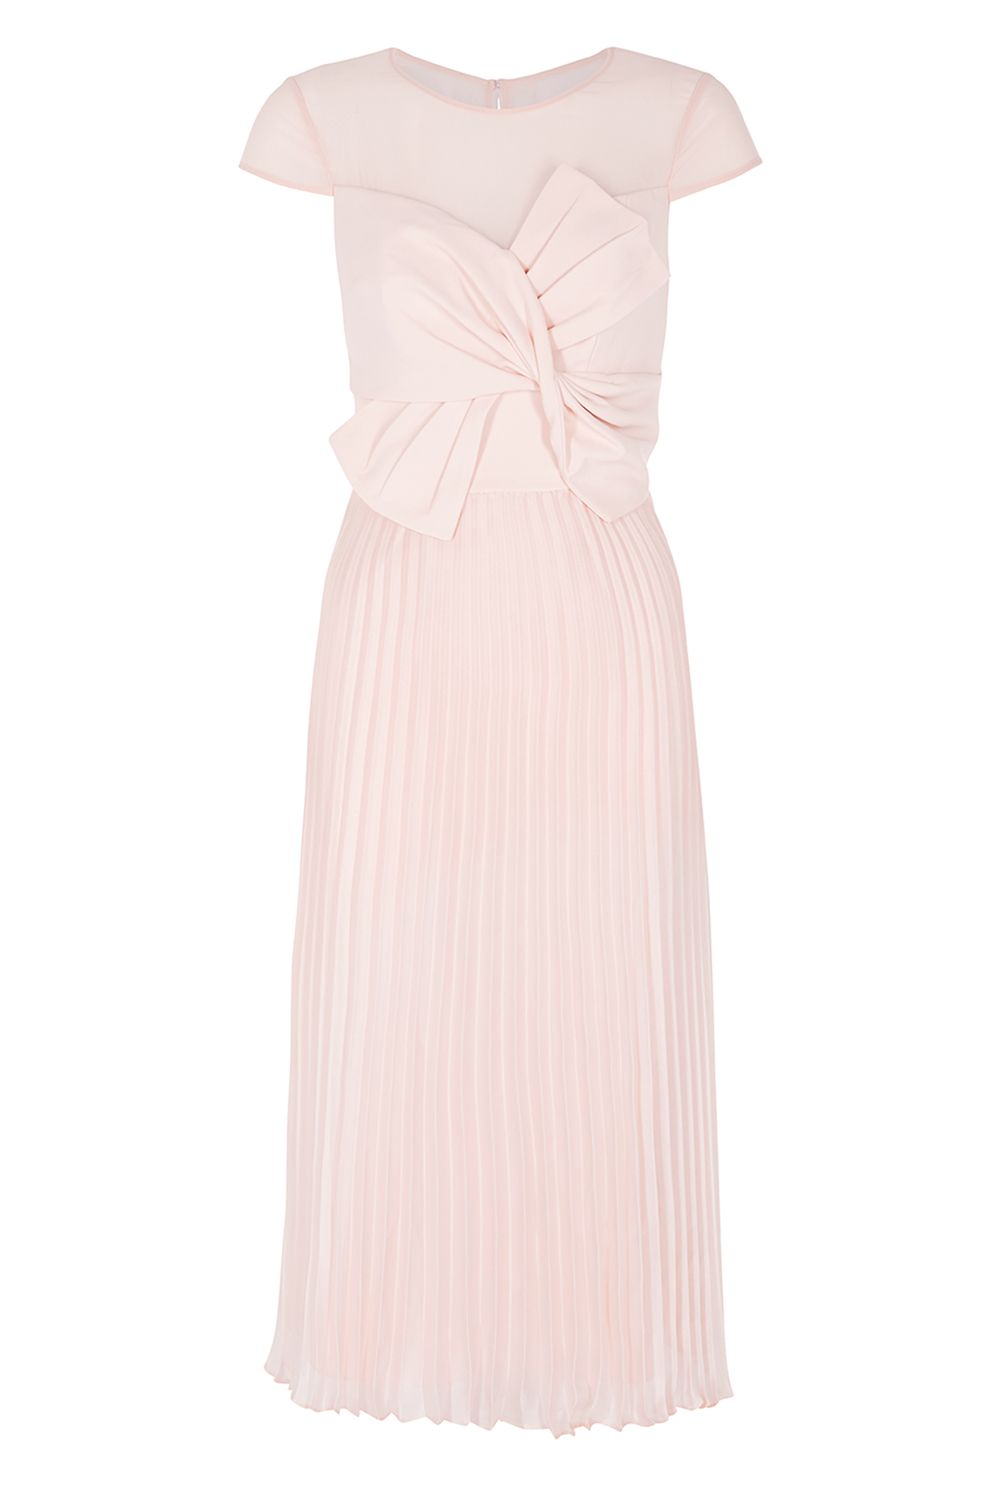 Coast Bonnie Bow Dress, Pink